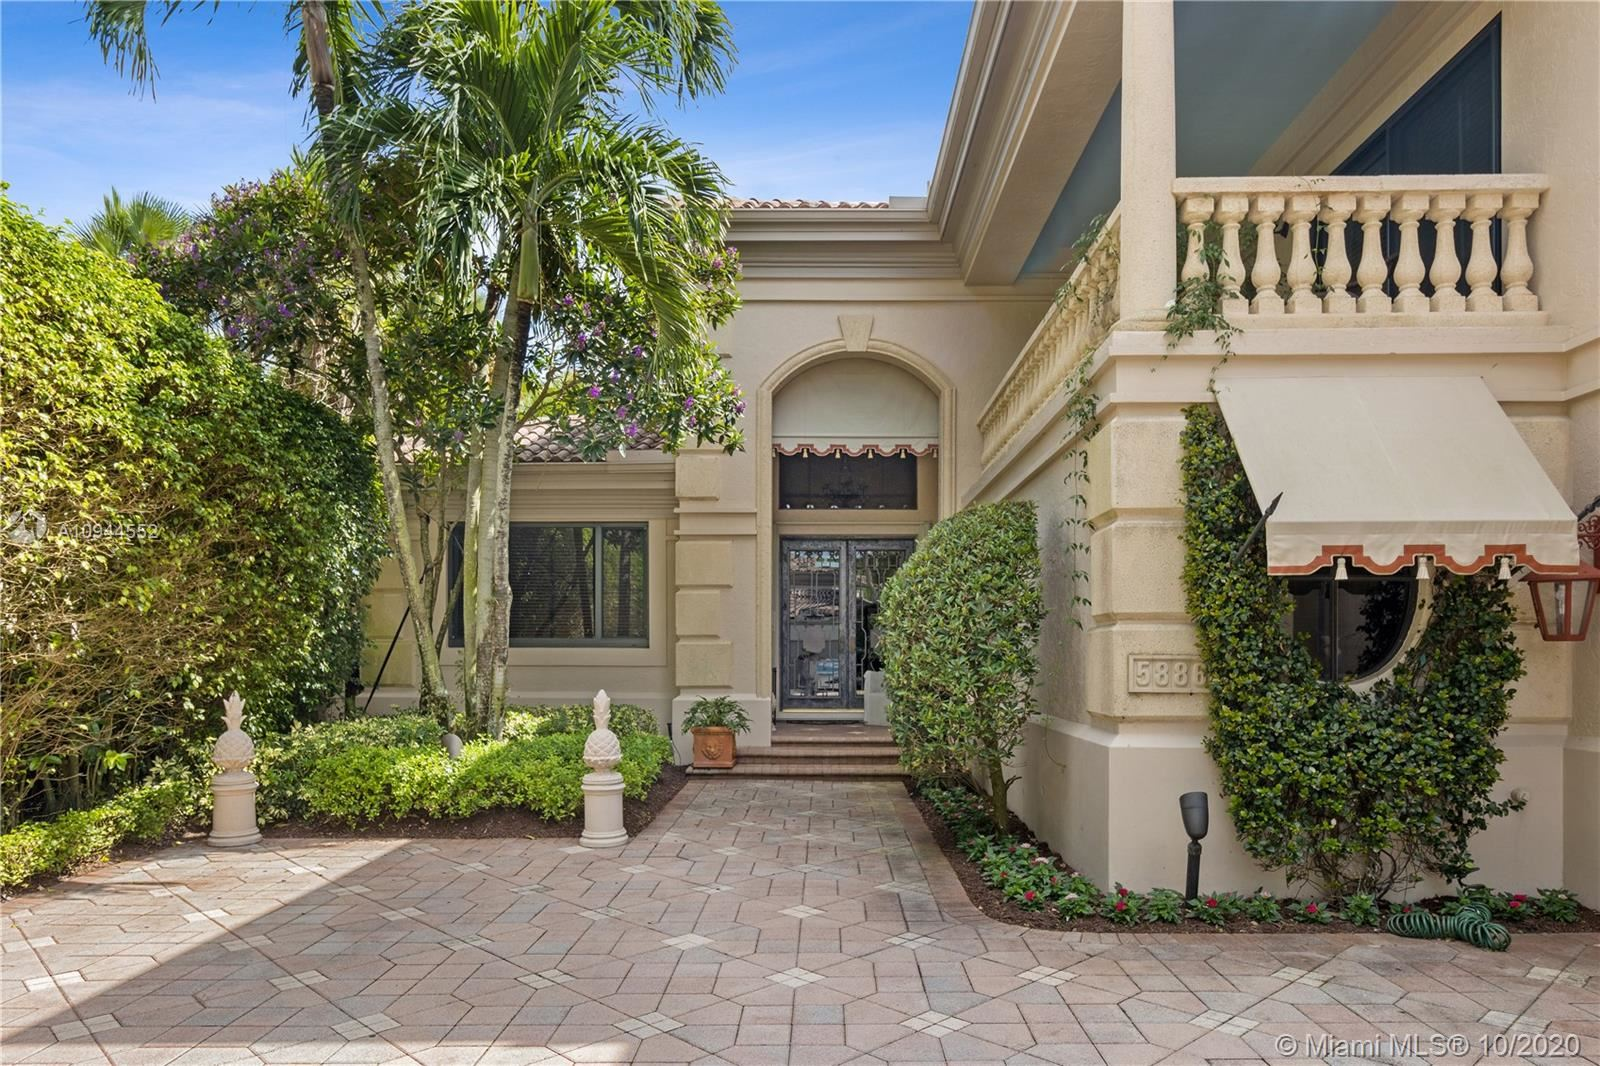 5886 NW 25th Ct, Boca Raton, FL 33496 - #: A10944552